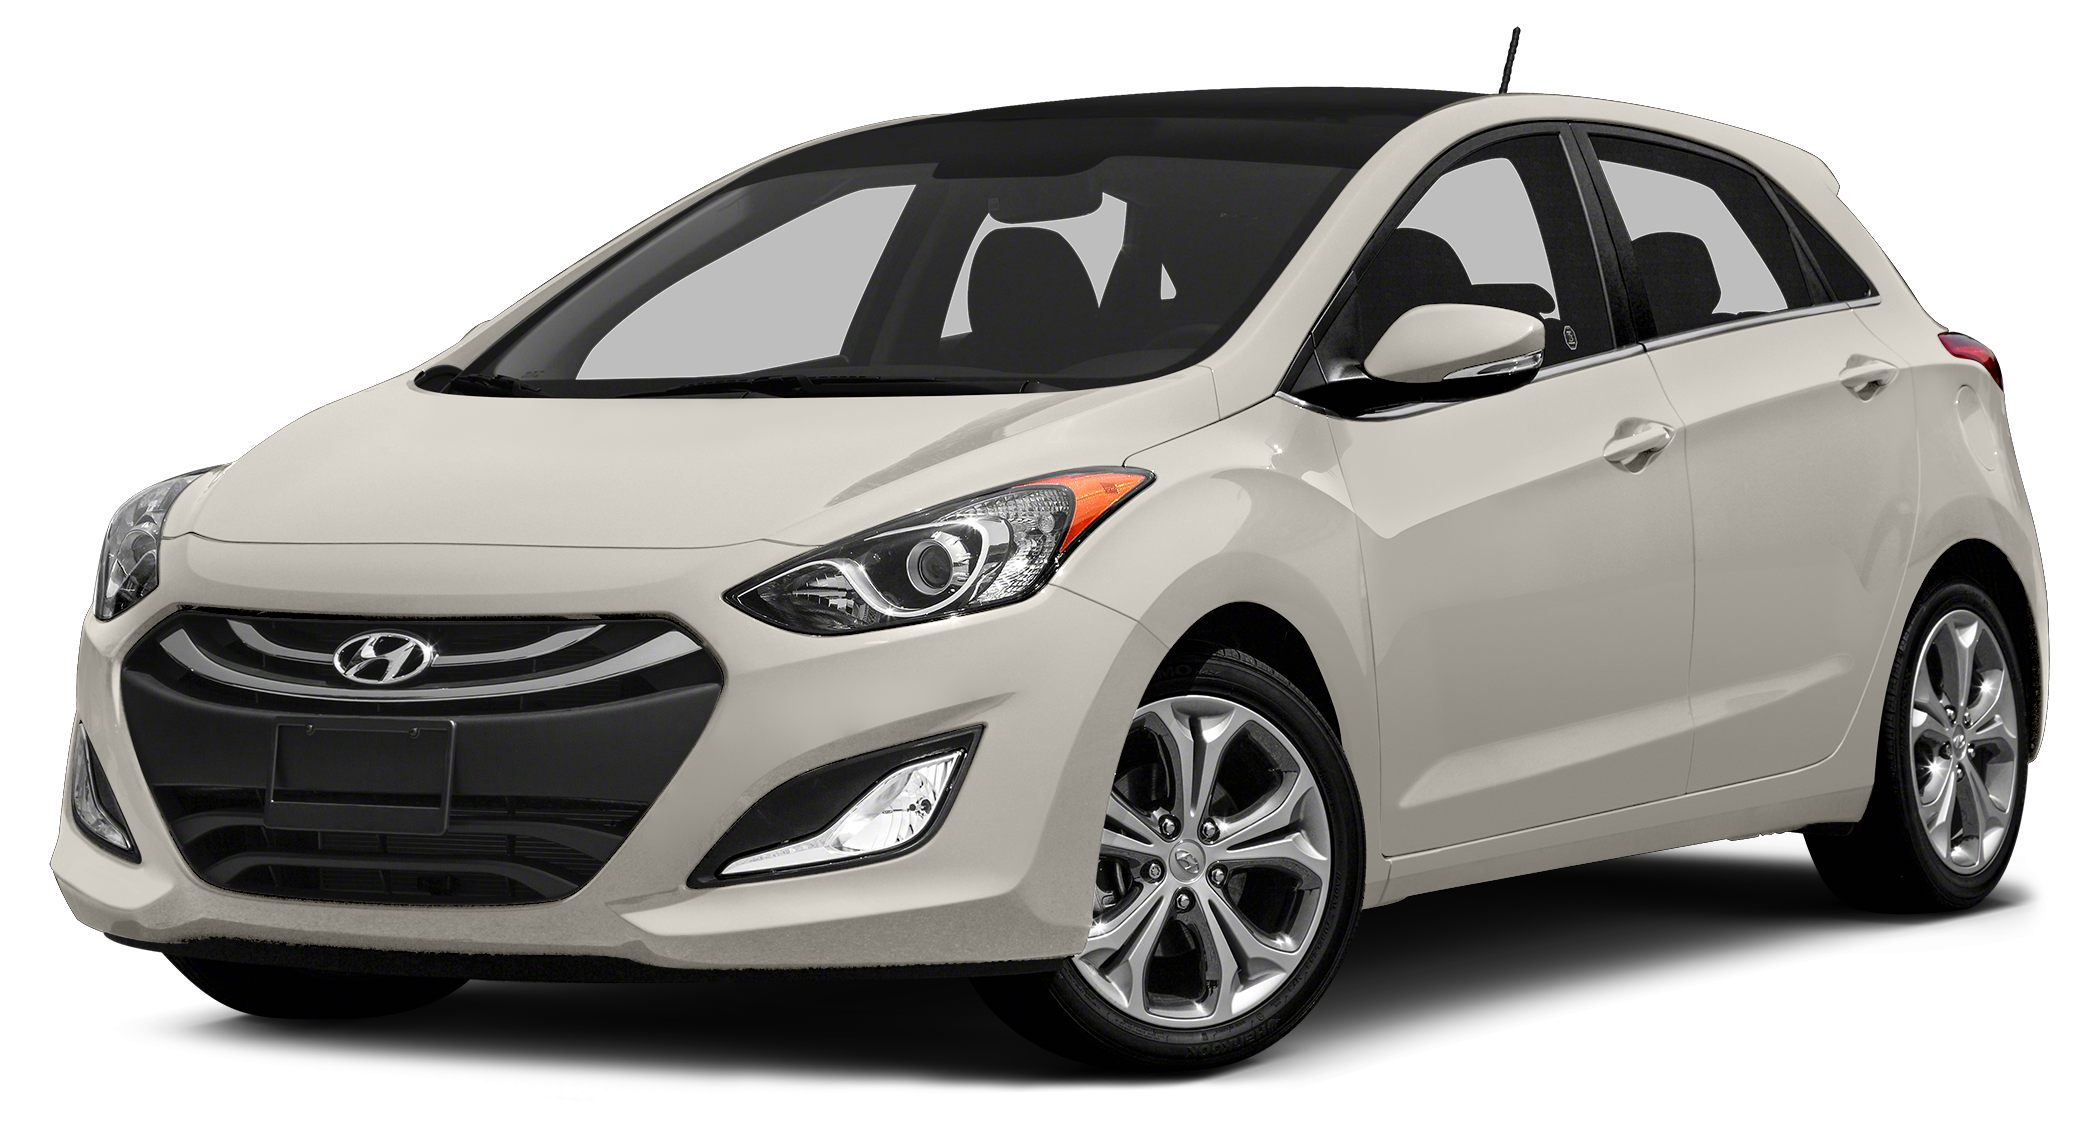 2013 Hyundai Elantra GT Base HYUNDAI CERTFIED - JUST 11K MILES - This one owner GT Elantra comes w